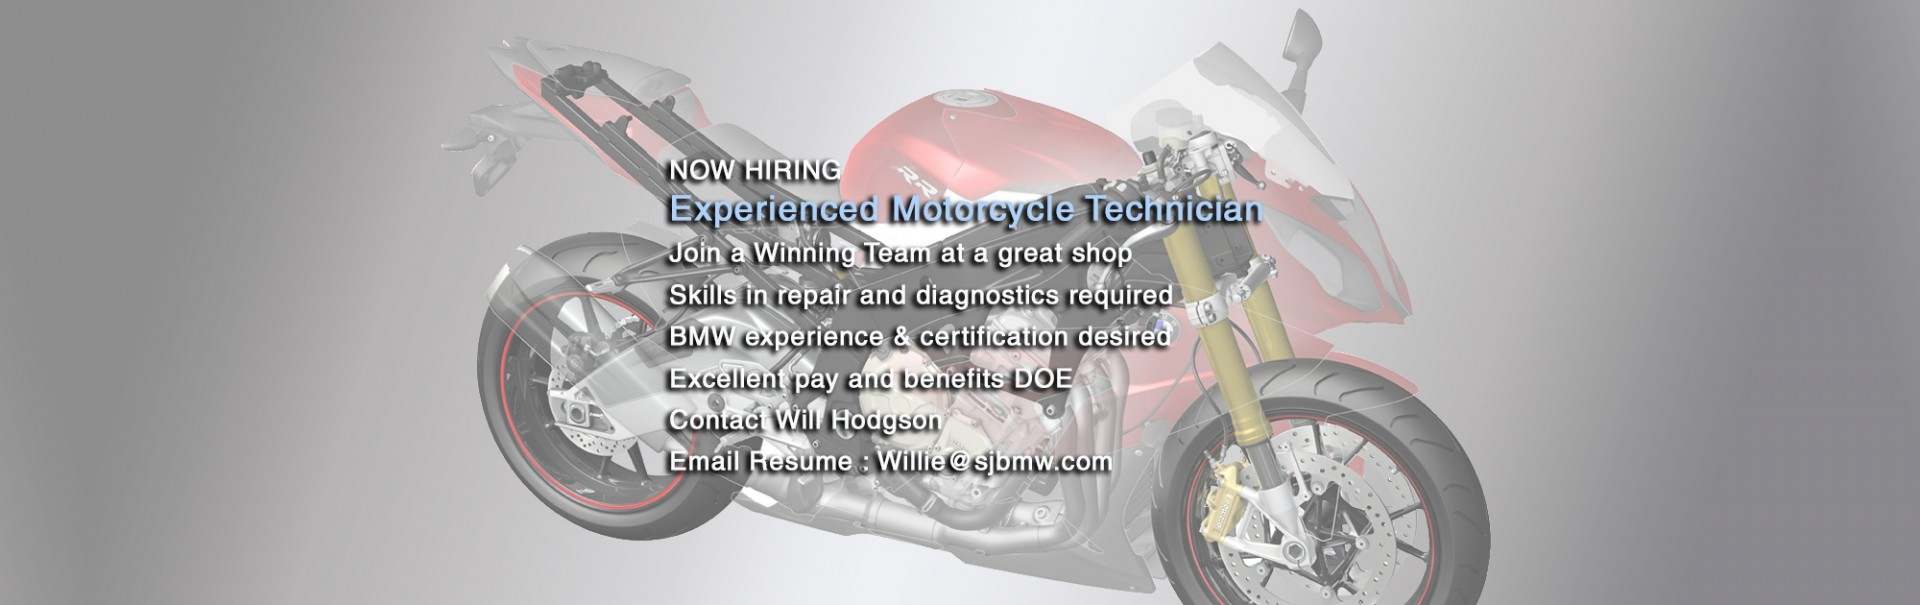 Now Hiring - Experienced Motorcycle Technician